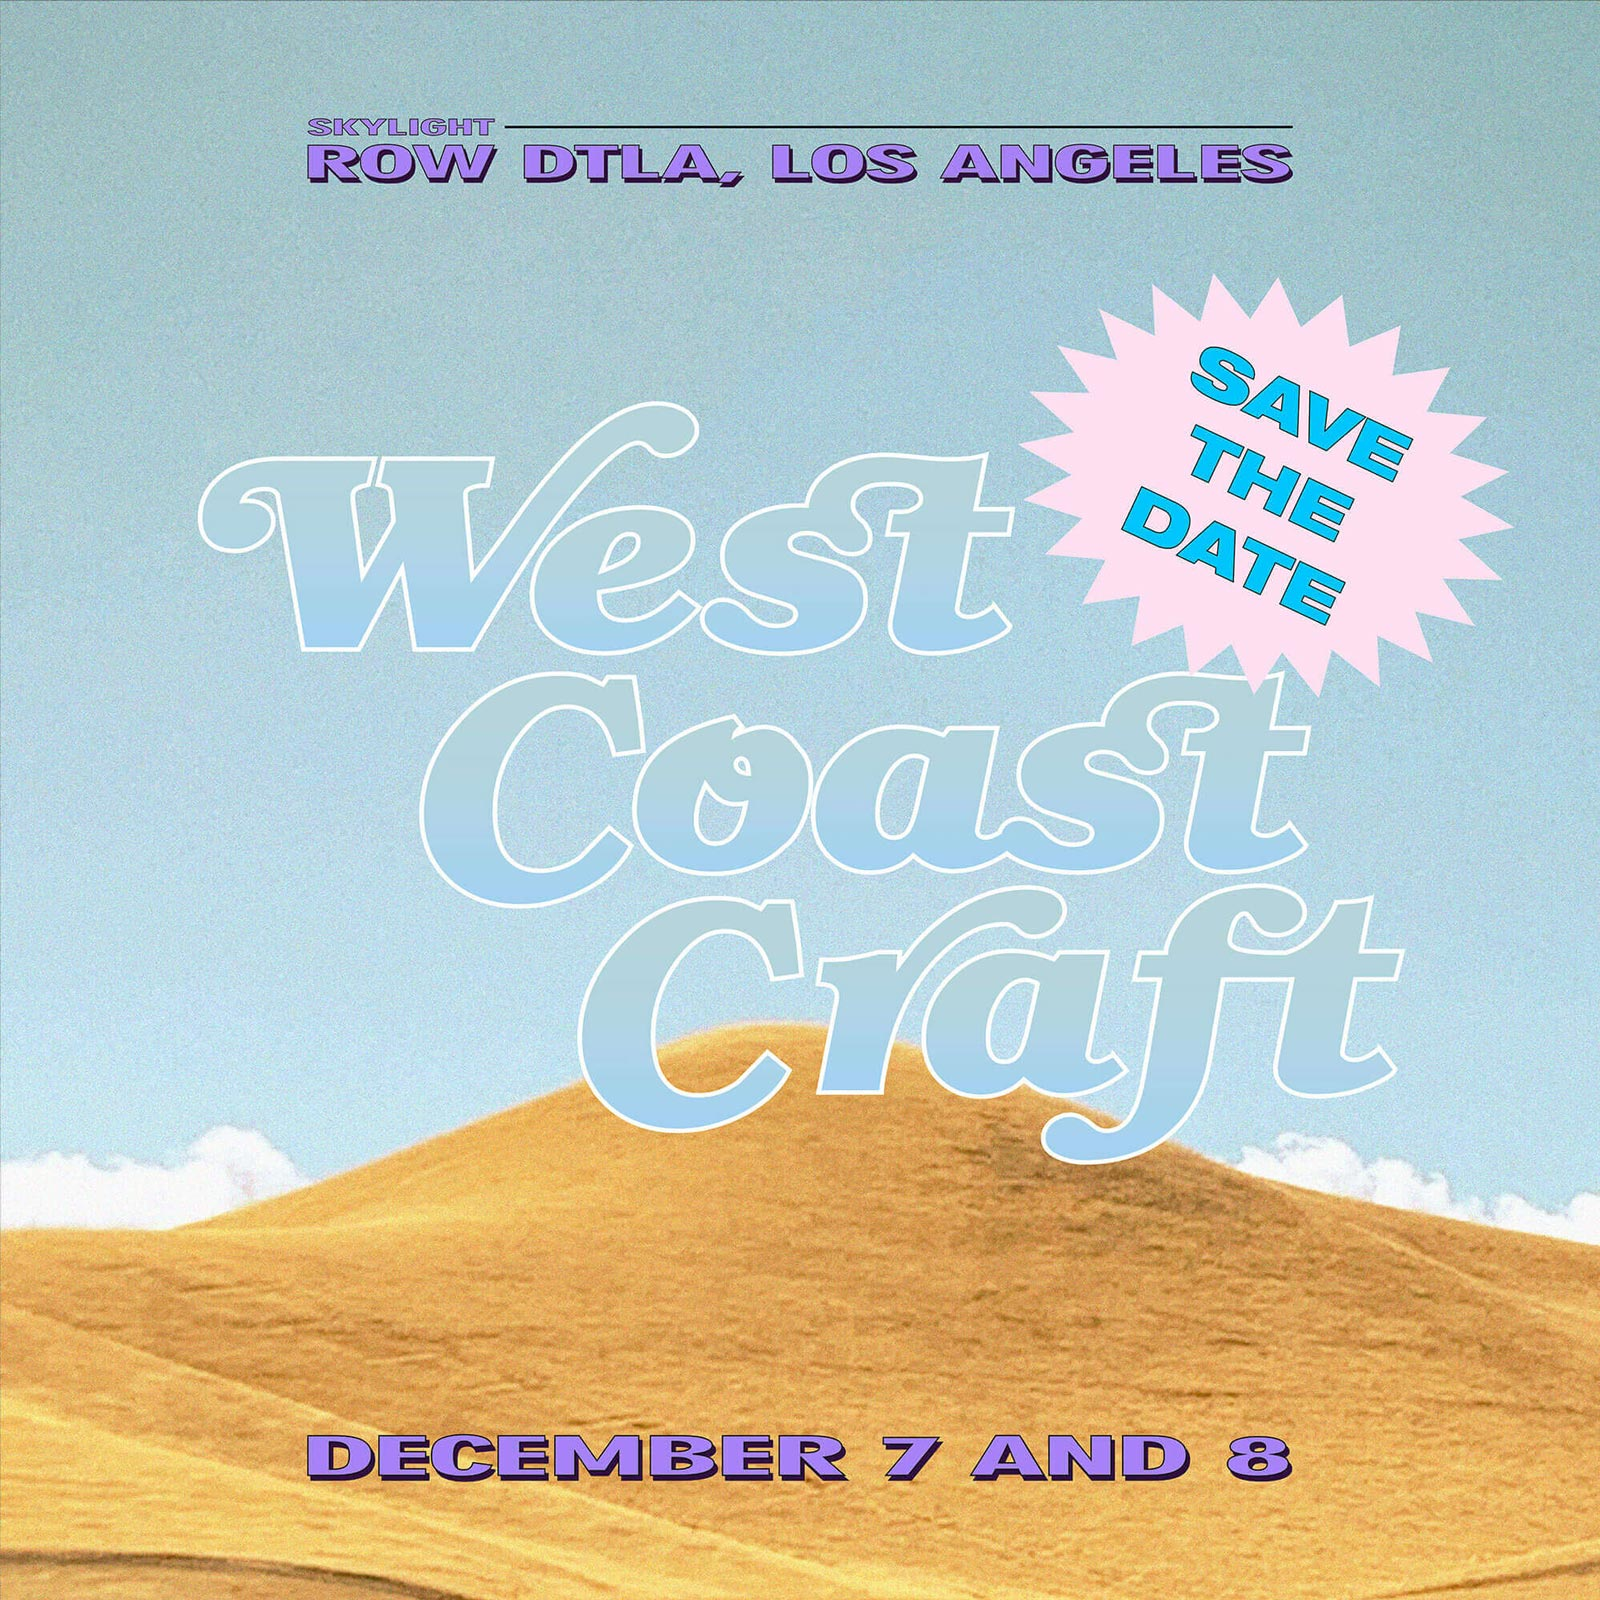 graphic poster of west coast craft los angeles fair featuring artists and designers